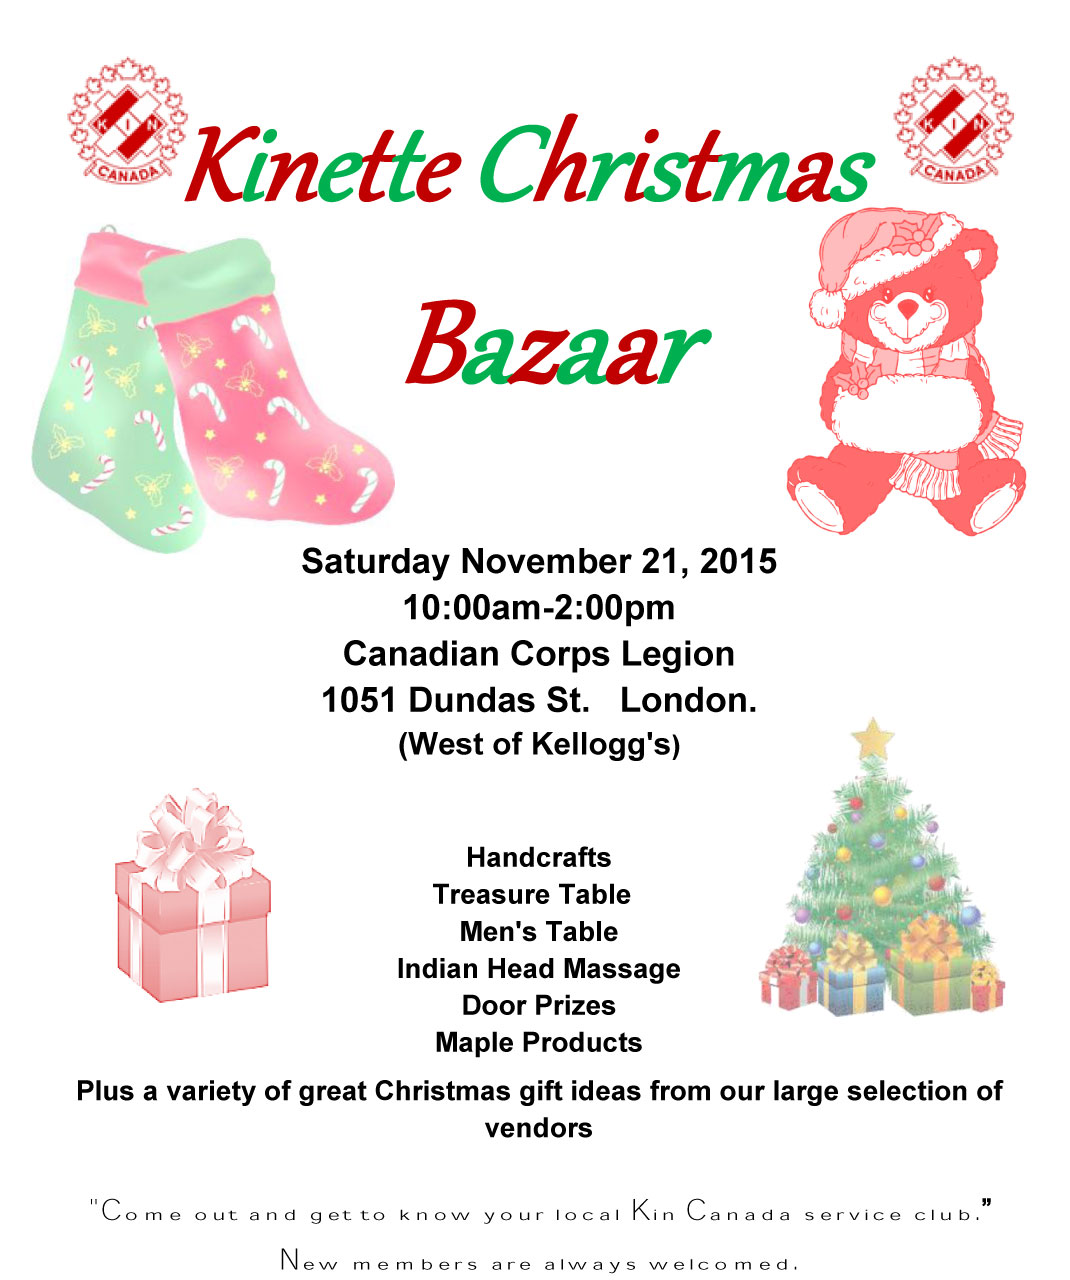 London Kinette Christmas Bazaar - District One Kin